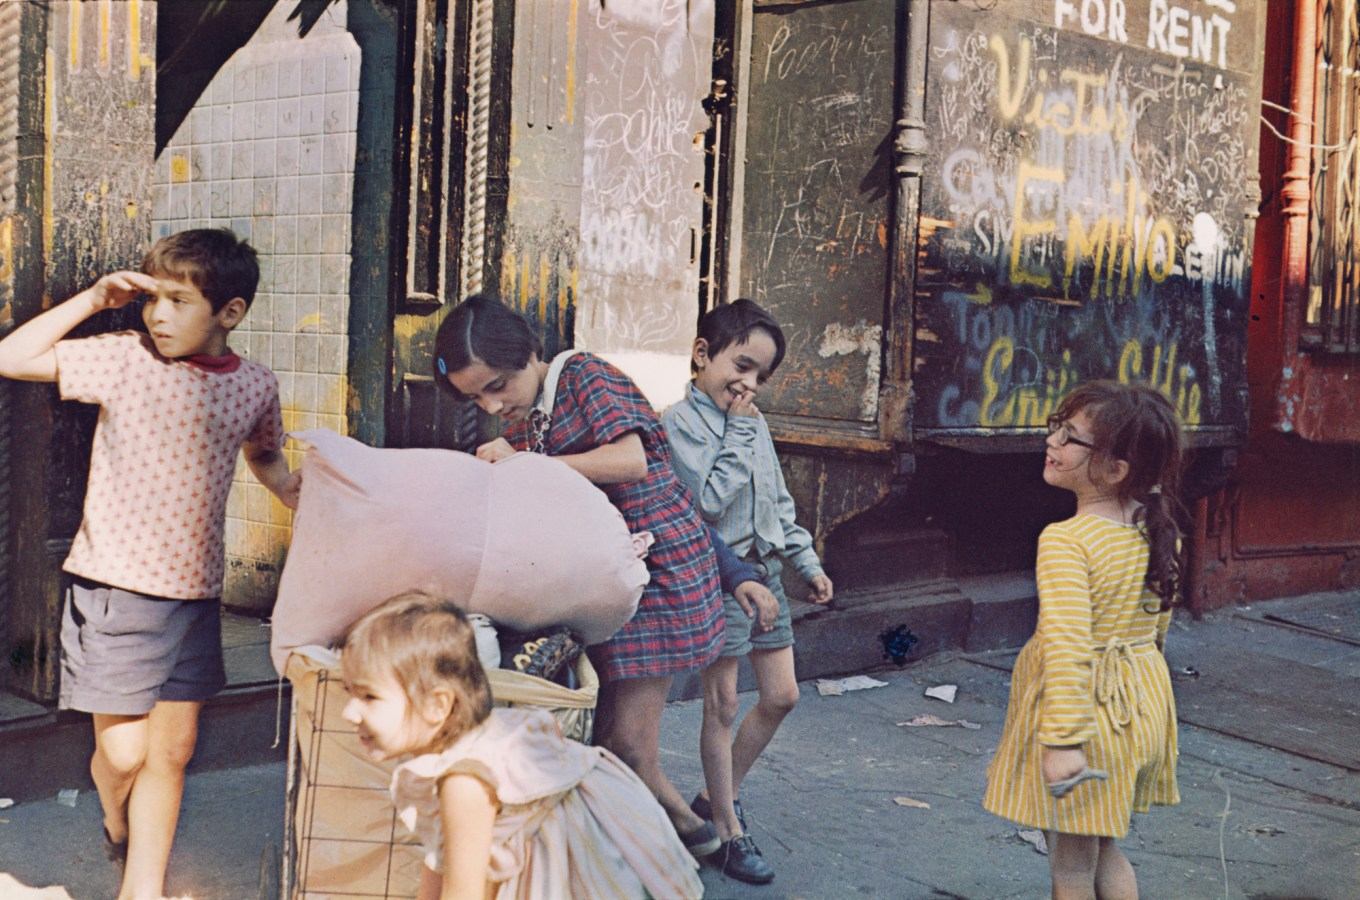 Color photograph of five young children on a city sidewalk before a graffitied storefront